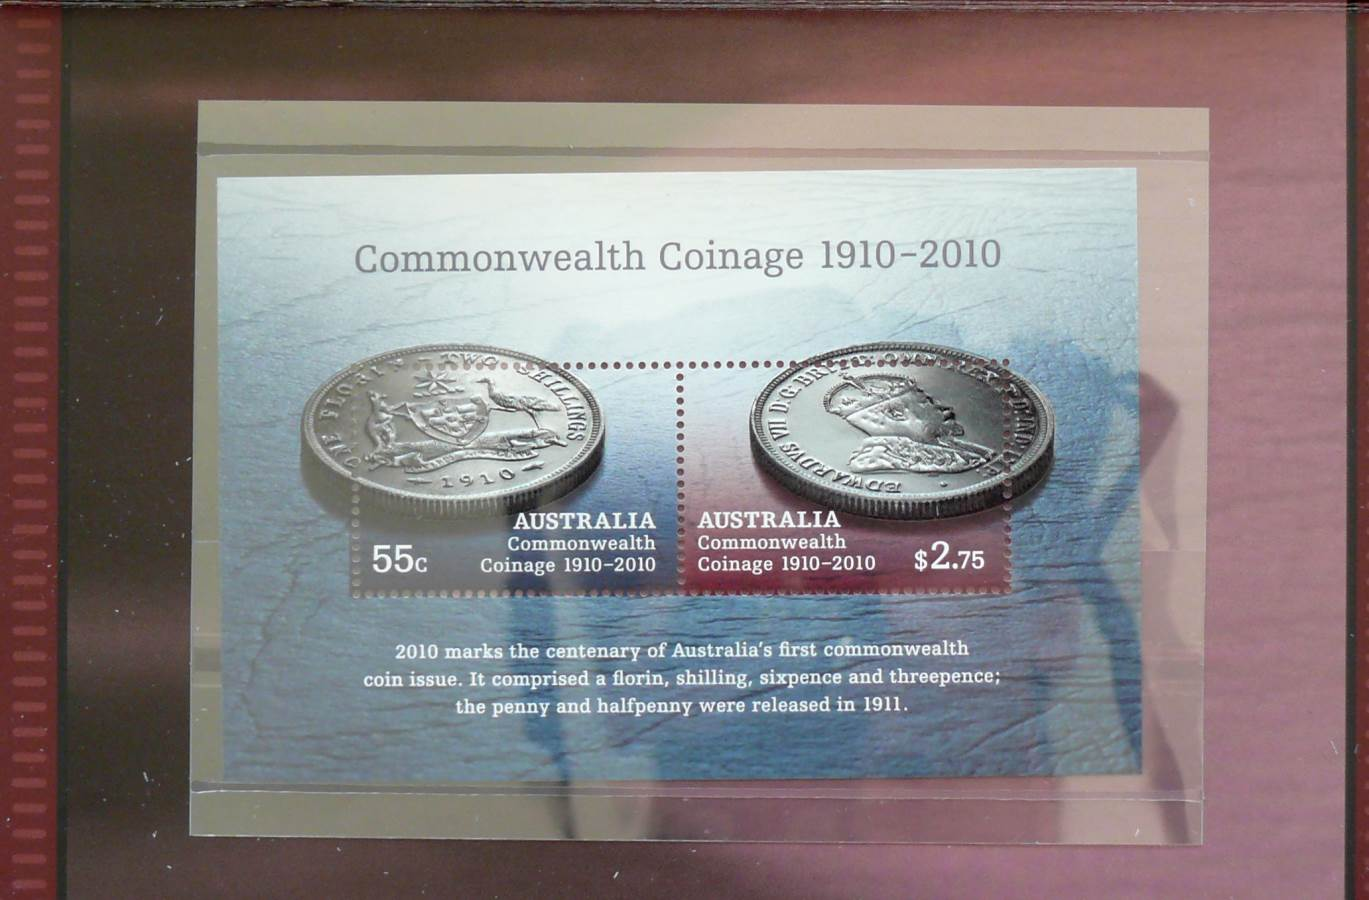 2010 Australia Stamp Pack - Commonwealth Coinage